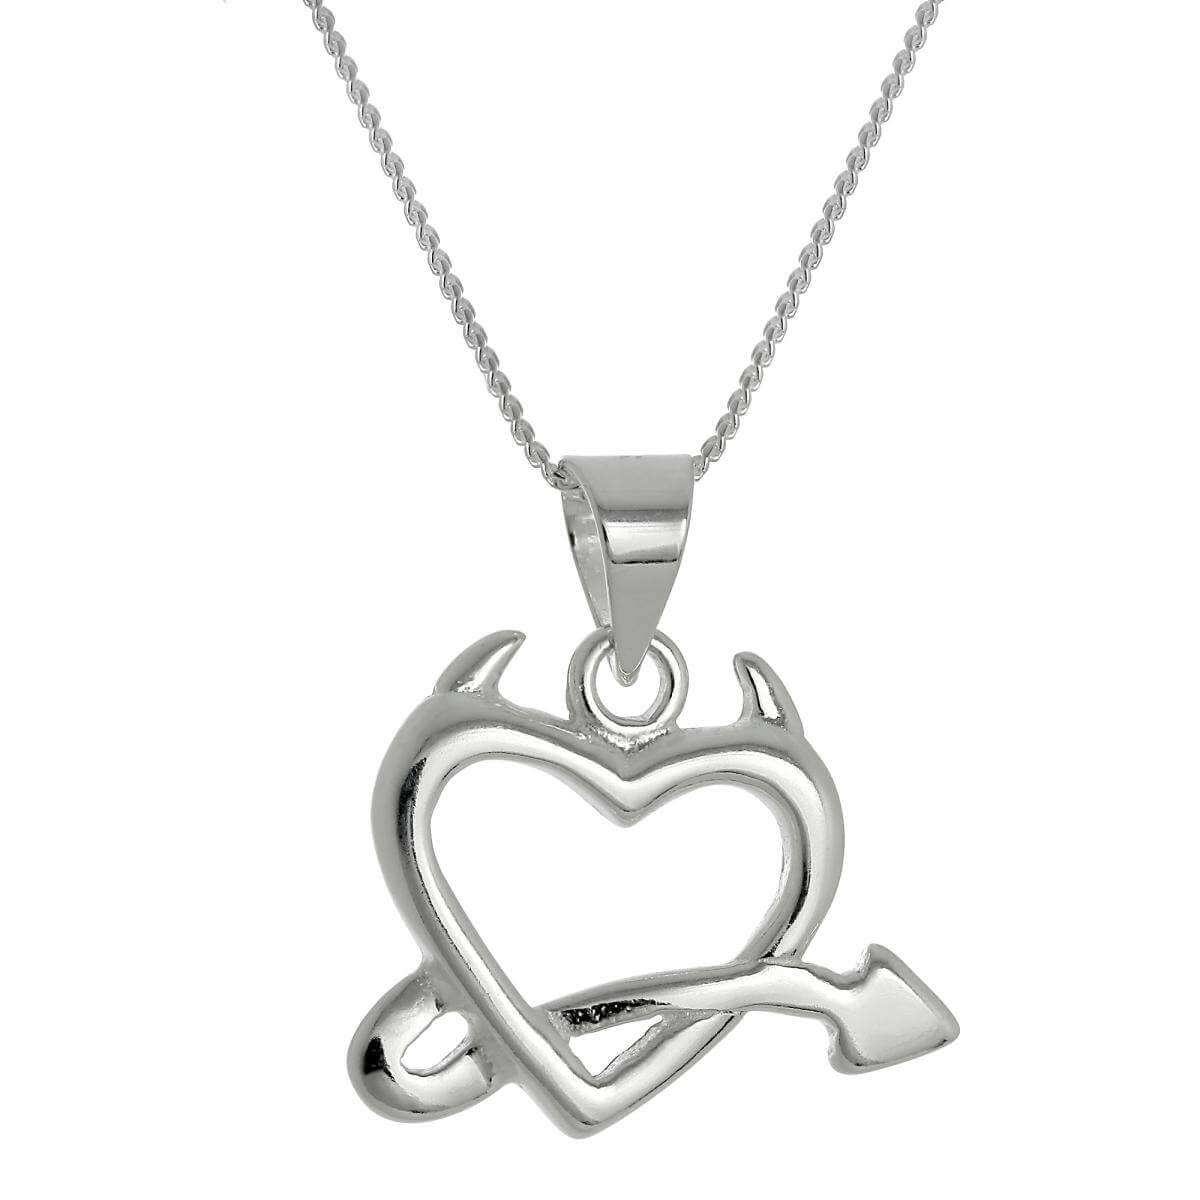 Large Sterling Silver Devil's Heart Pendant Necklace 16 - 22 Inches